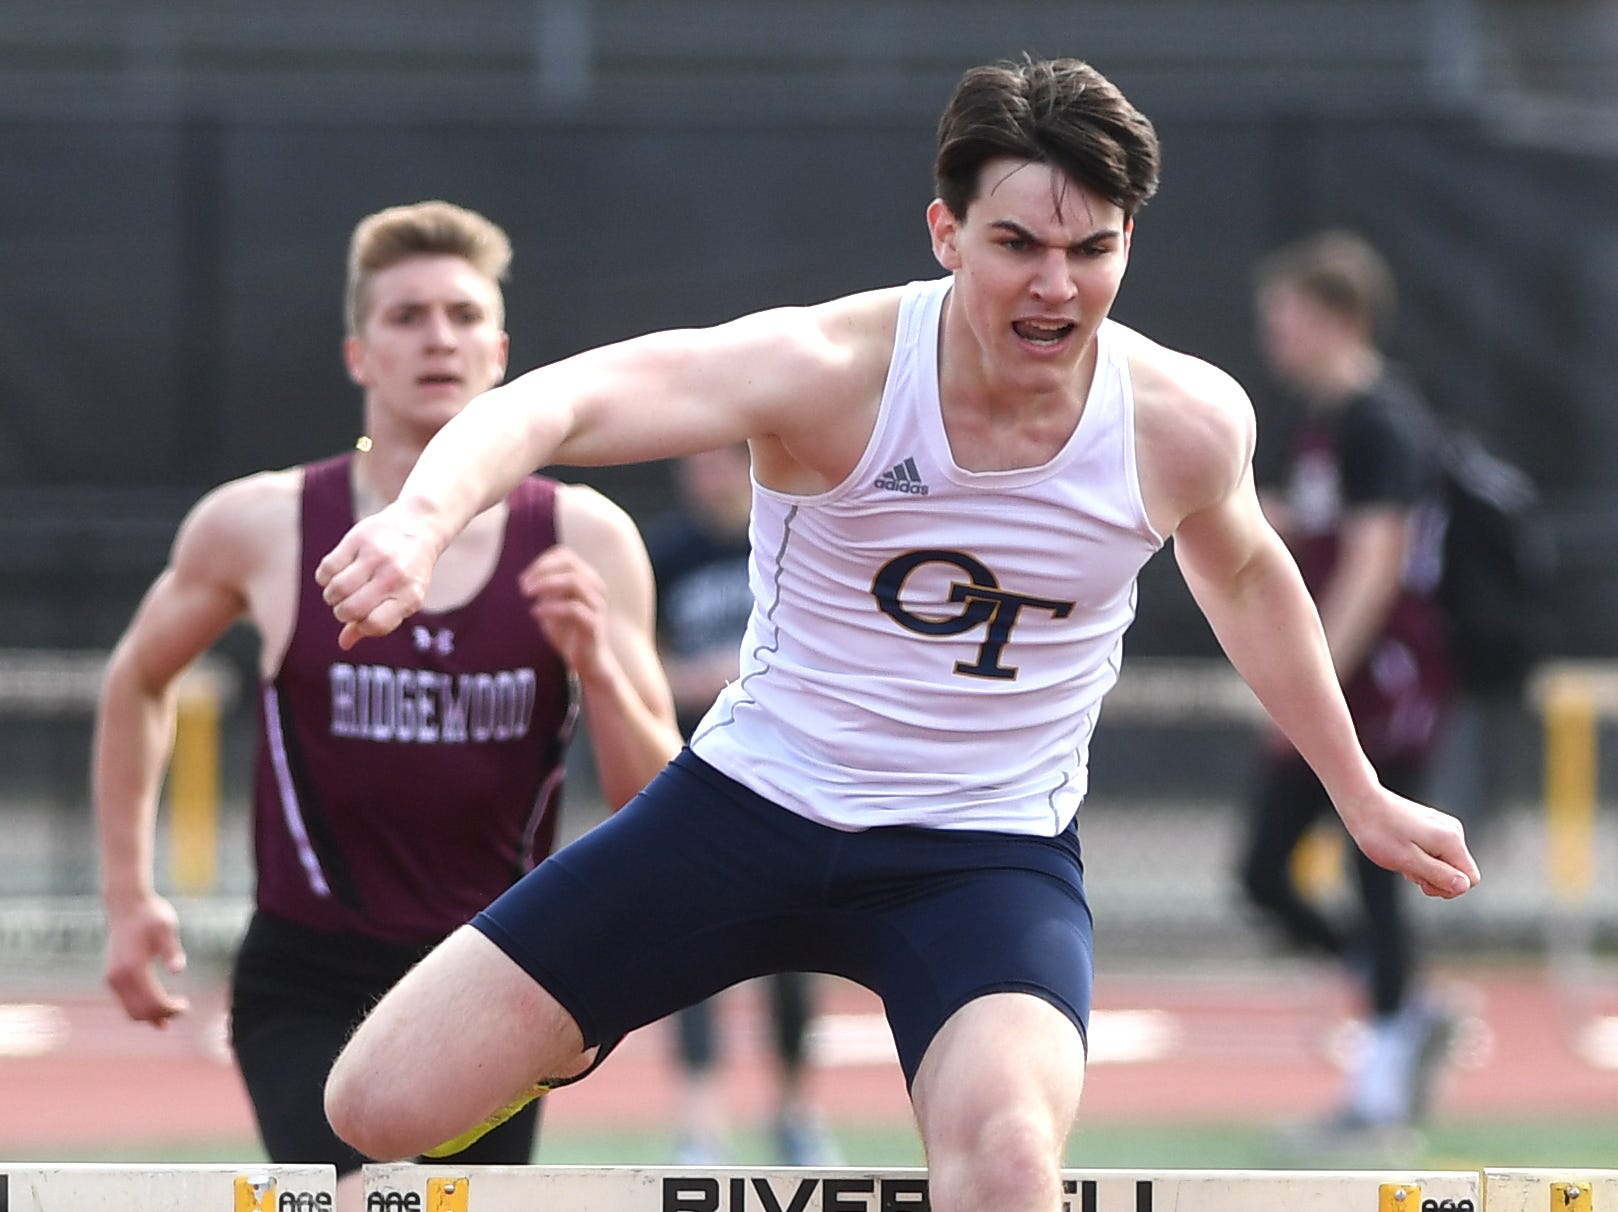 Bergen County Relays at River Dell H.S in Oradell on Friday, April 12, 2019. Ryan Jordan, of Old Tappan, in the 3 X 400 Hurdles.